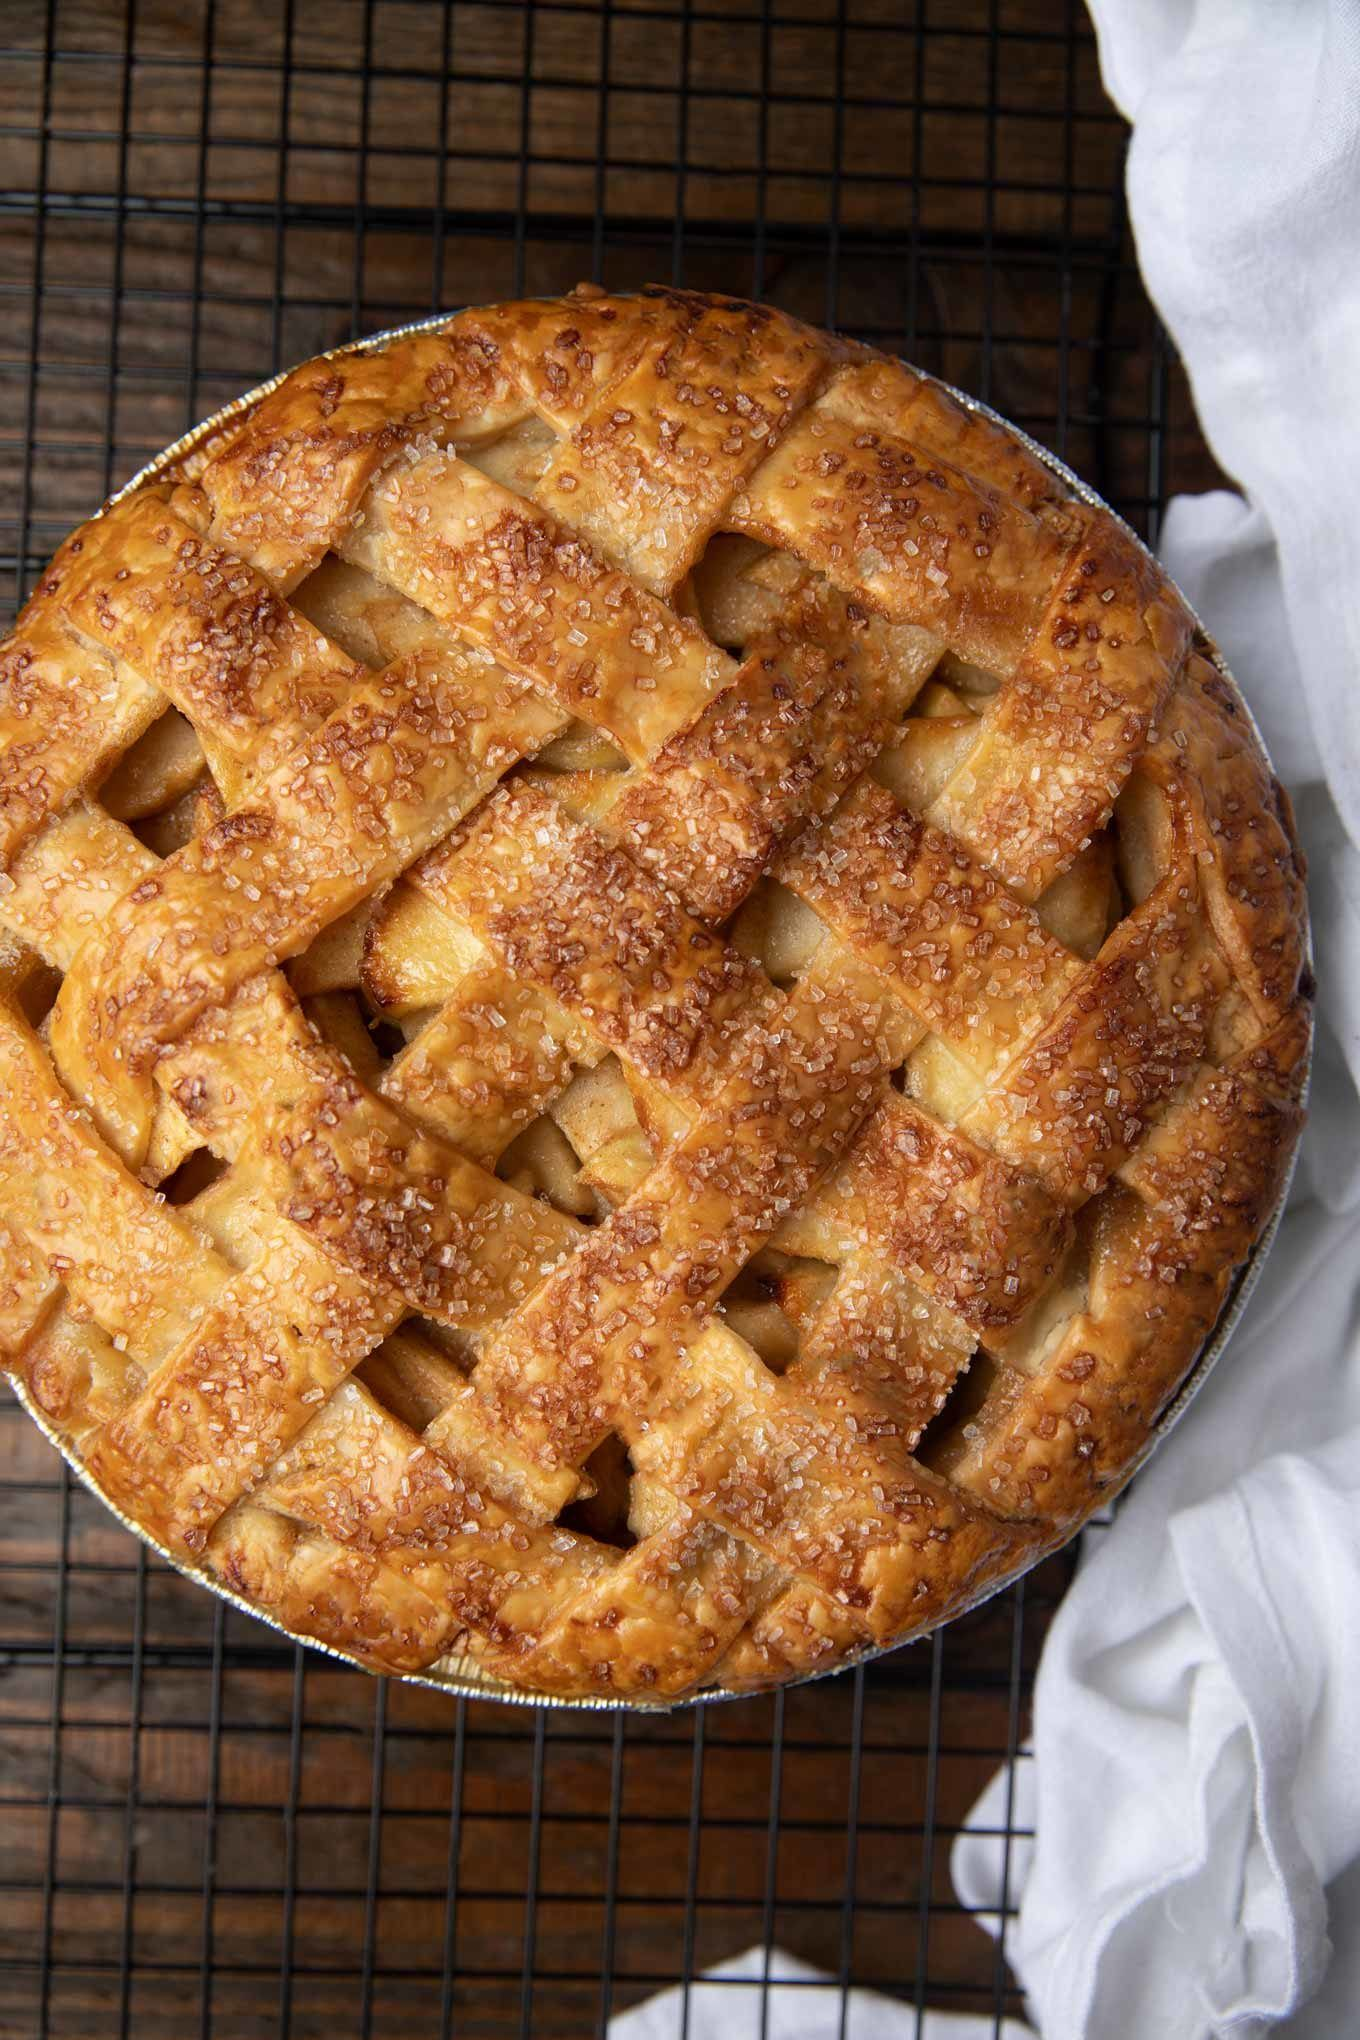 Apple Pie is a classic American dessert perfect for the